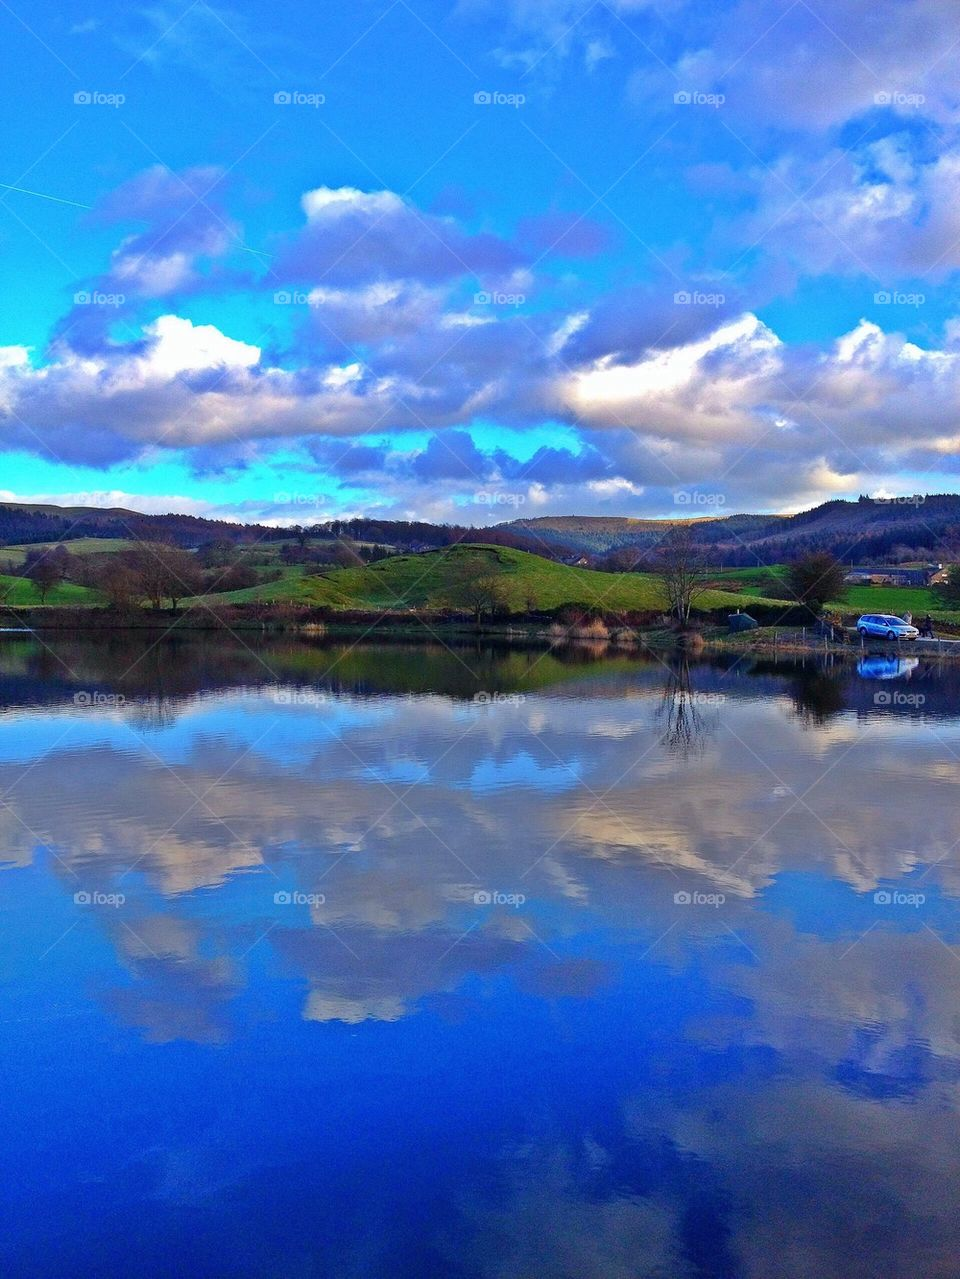 Reflections | all_things_art, reservoir, reflect, atmosphere